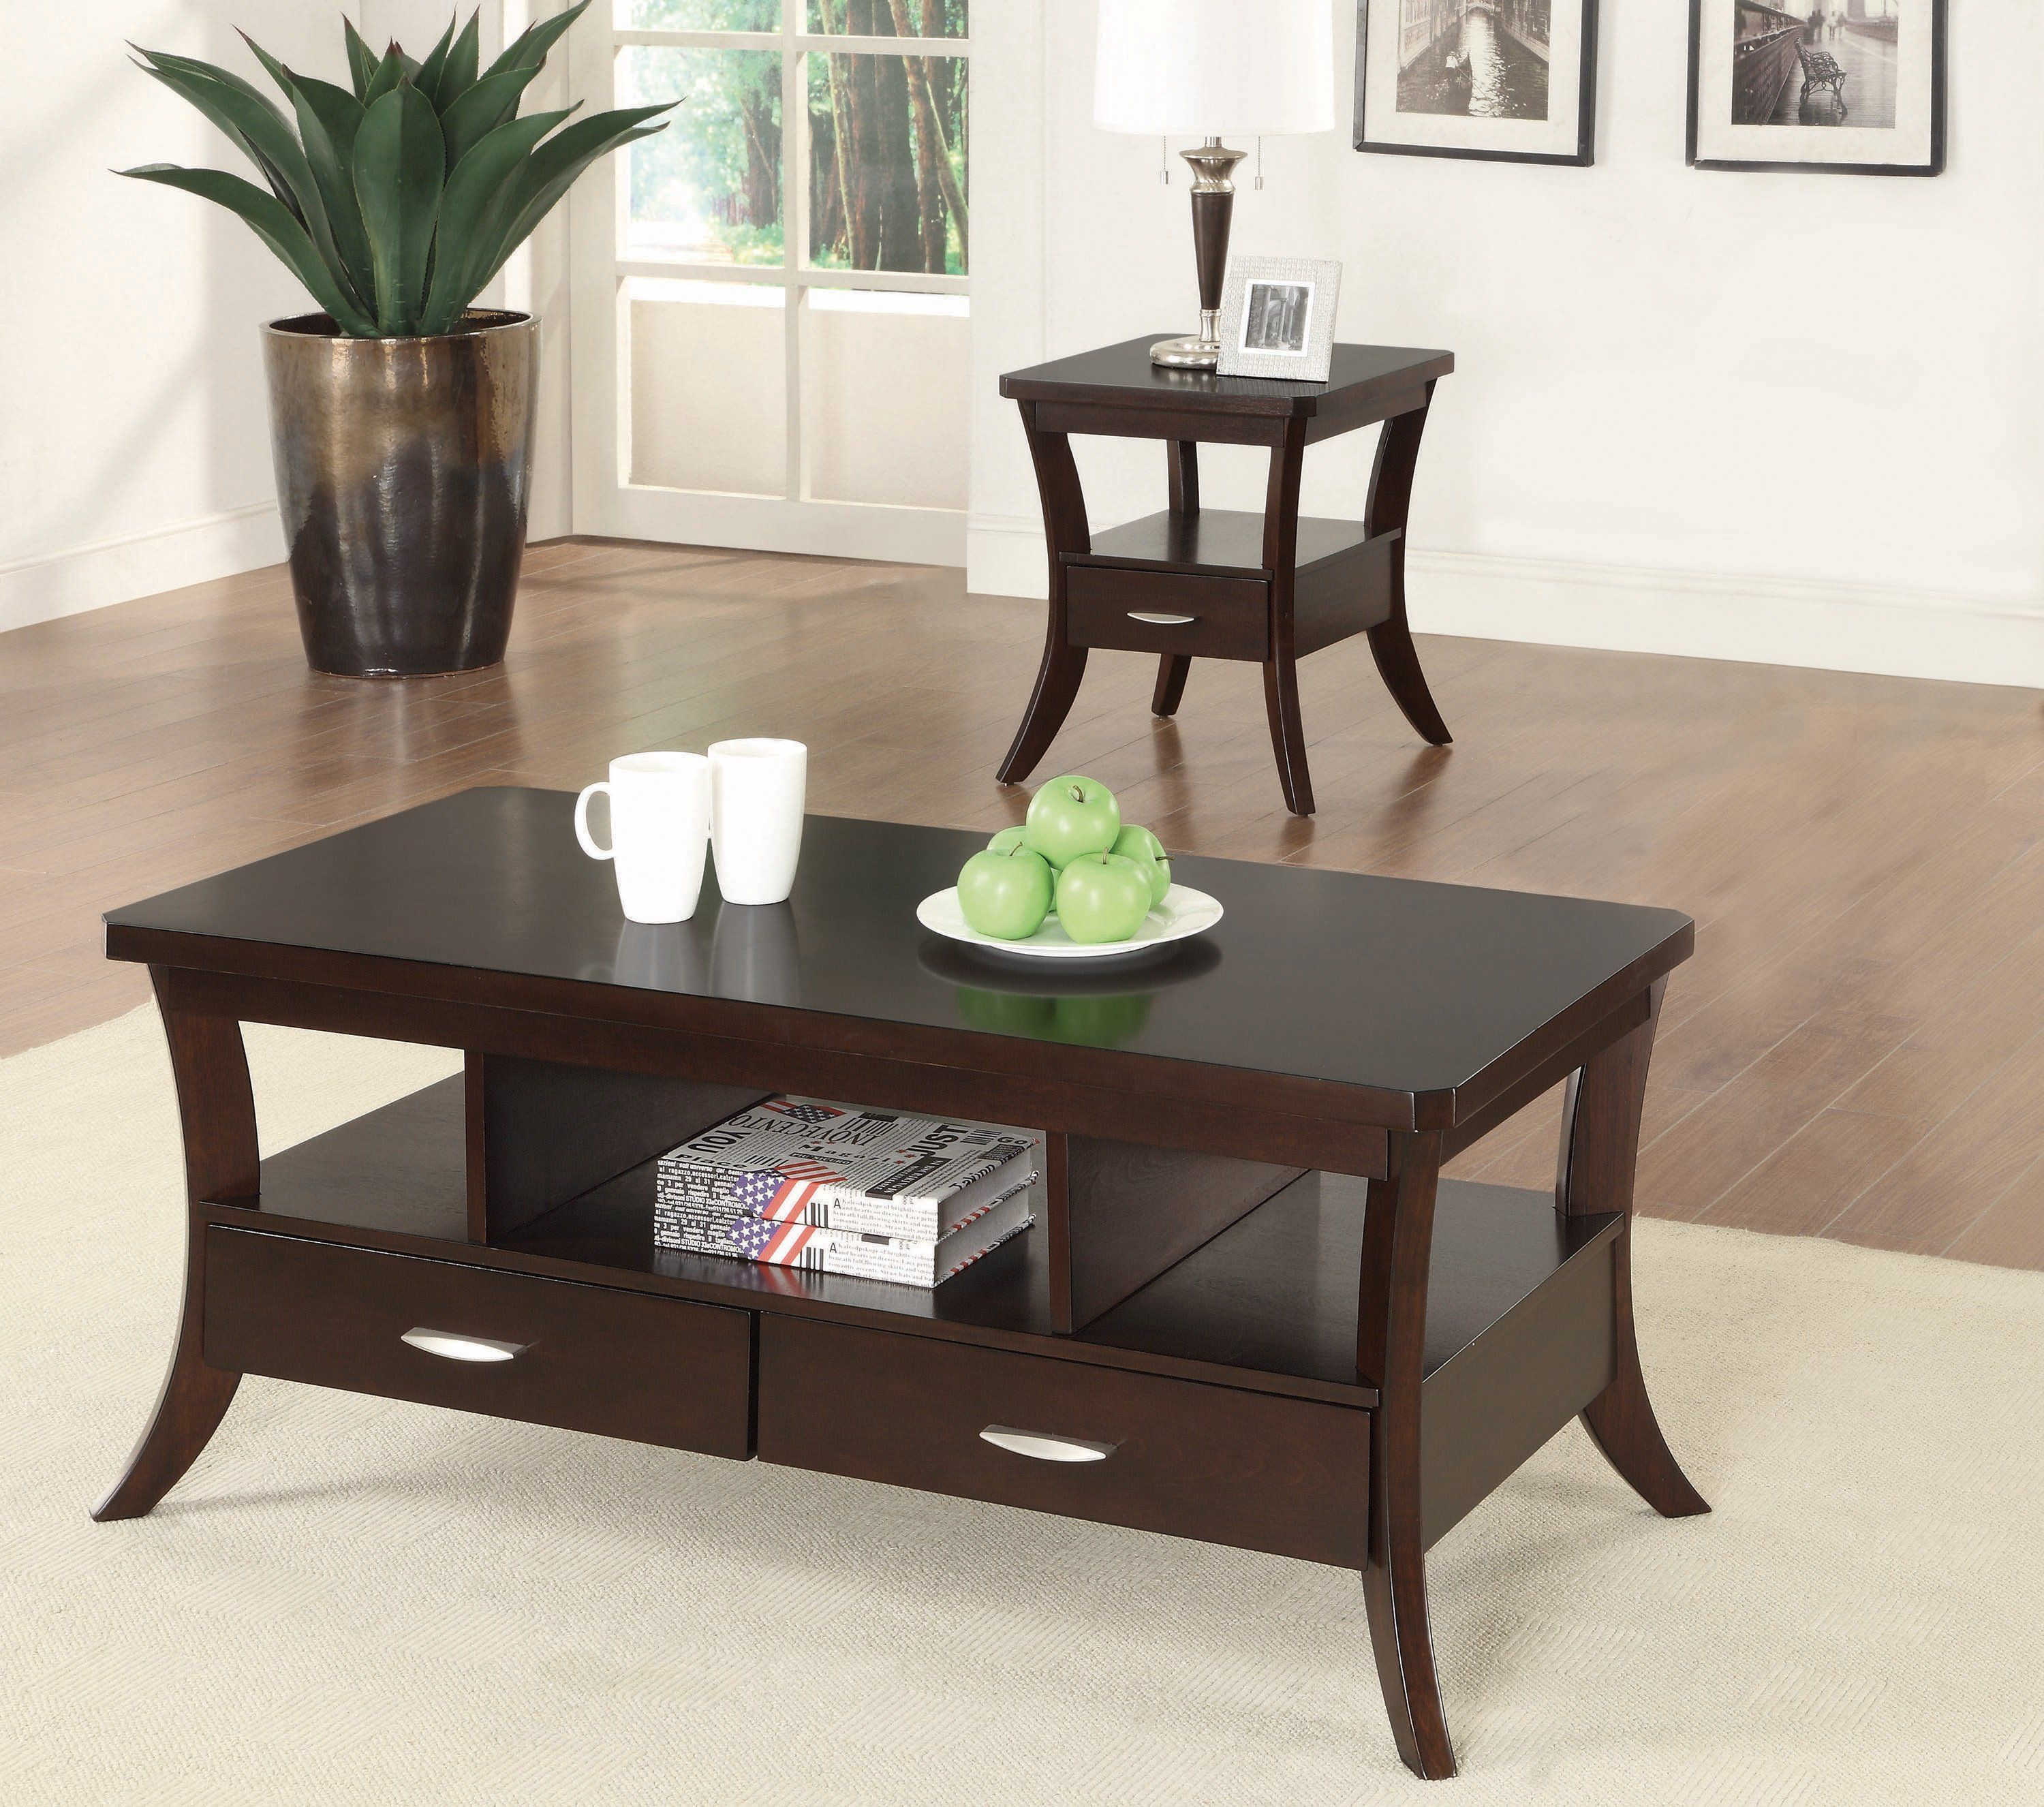 Flared Occasional Collection In 2021 Home Coffee Tables Coffee Table Coffee Table Setting [ 2652 x 3000 Pixel ]